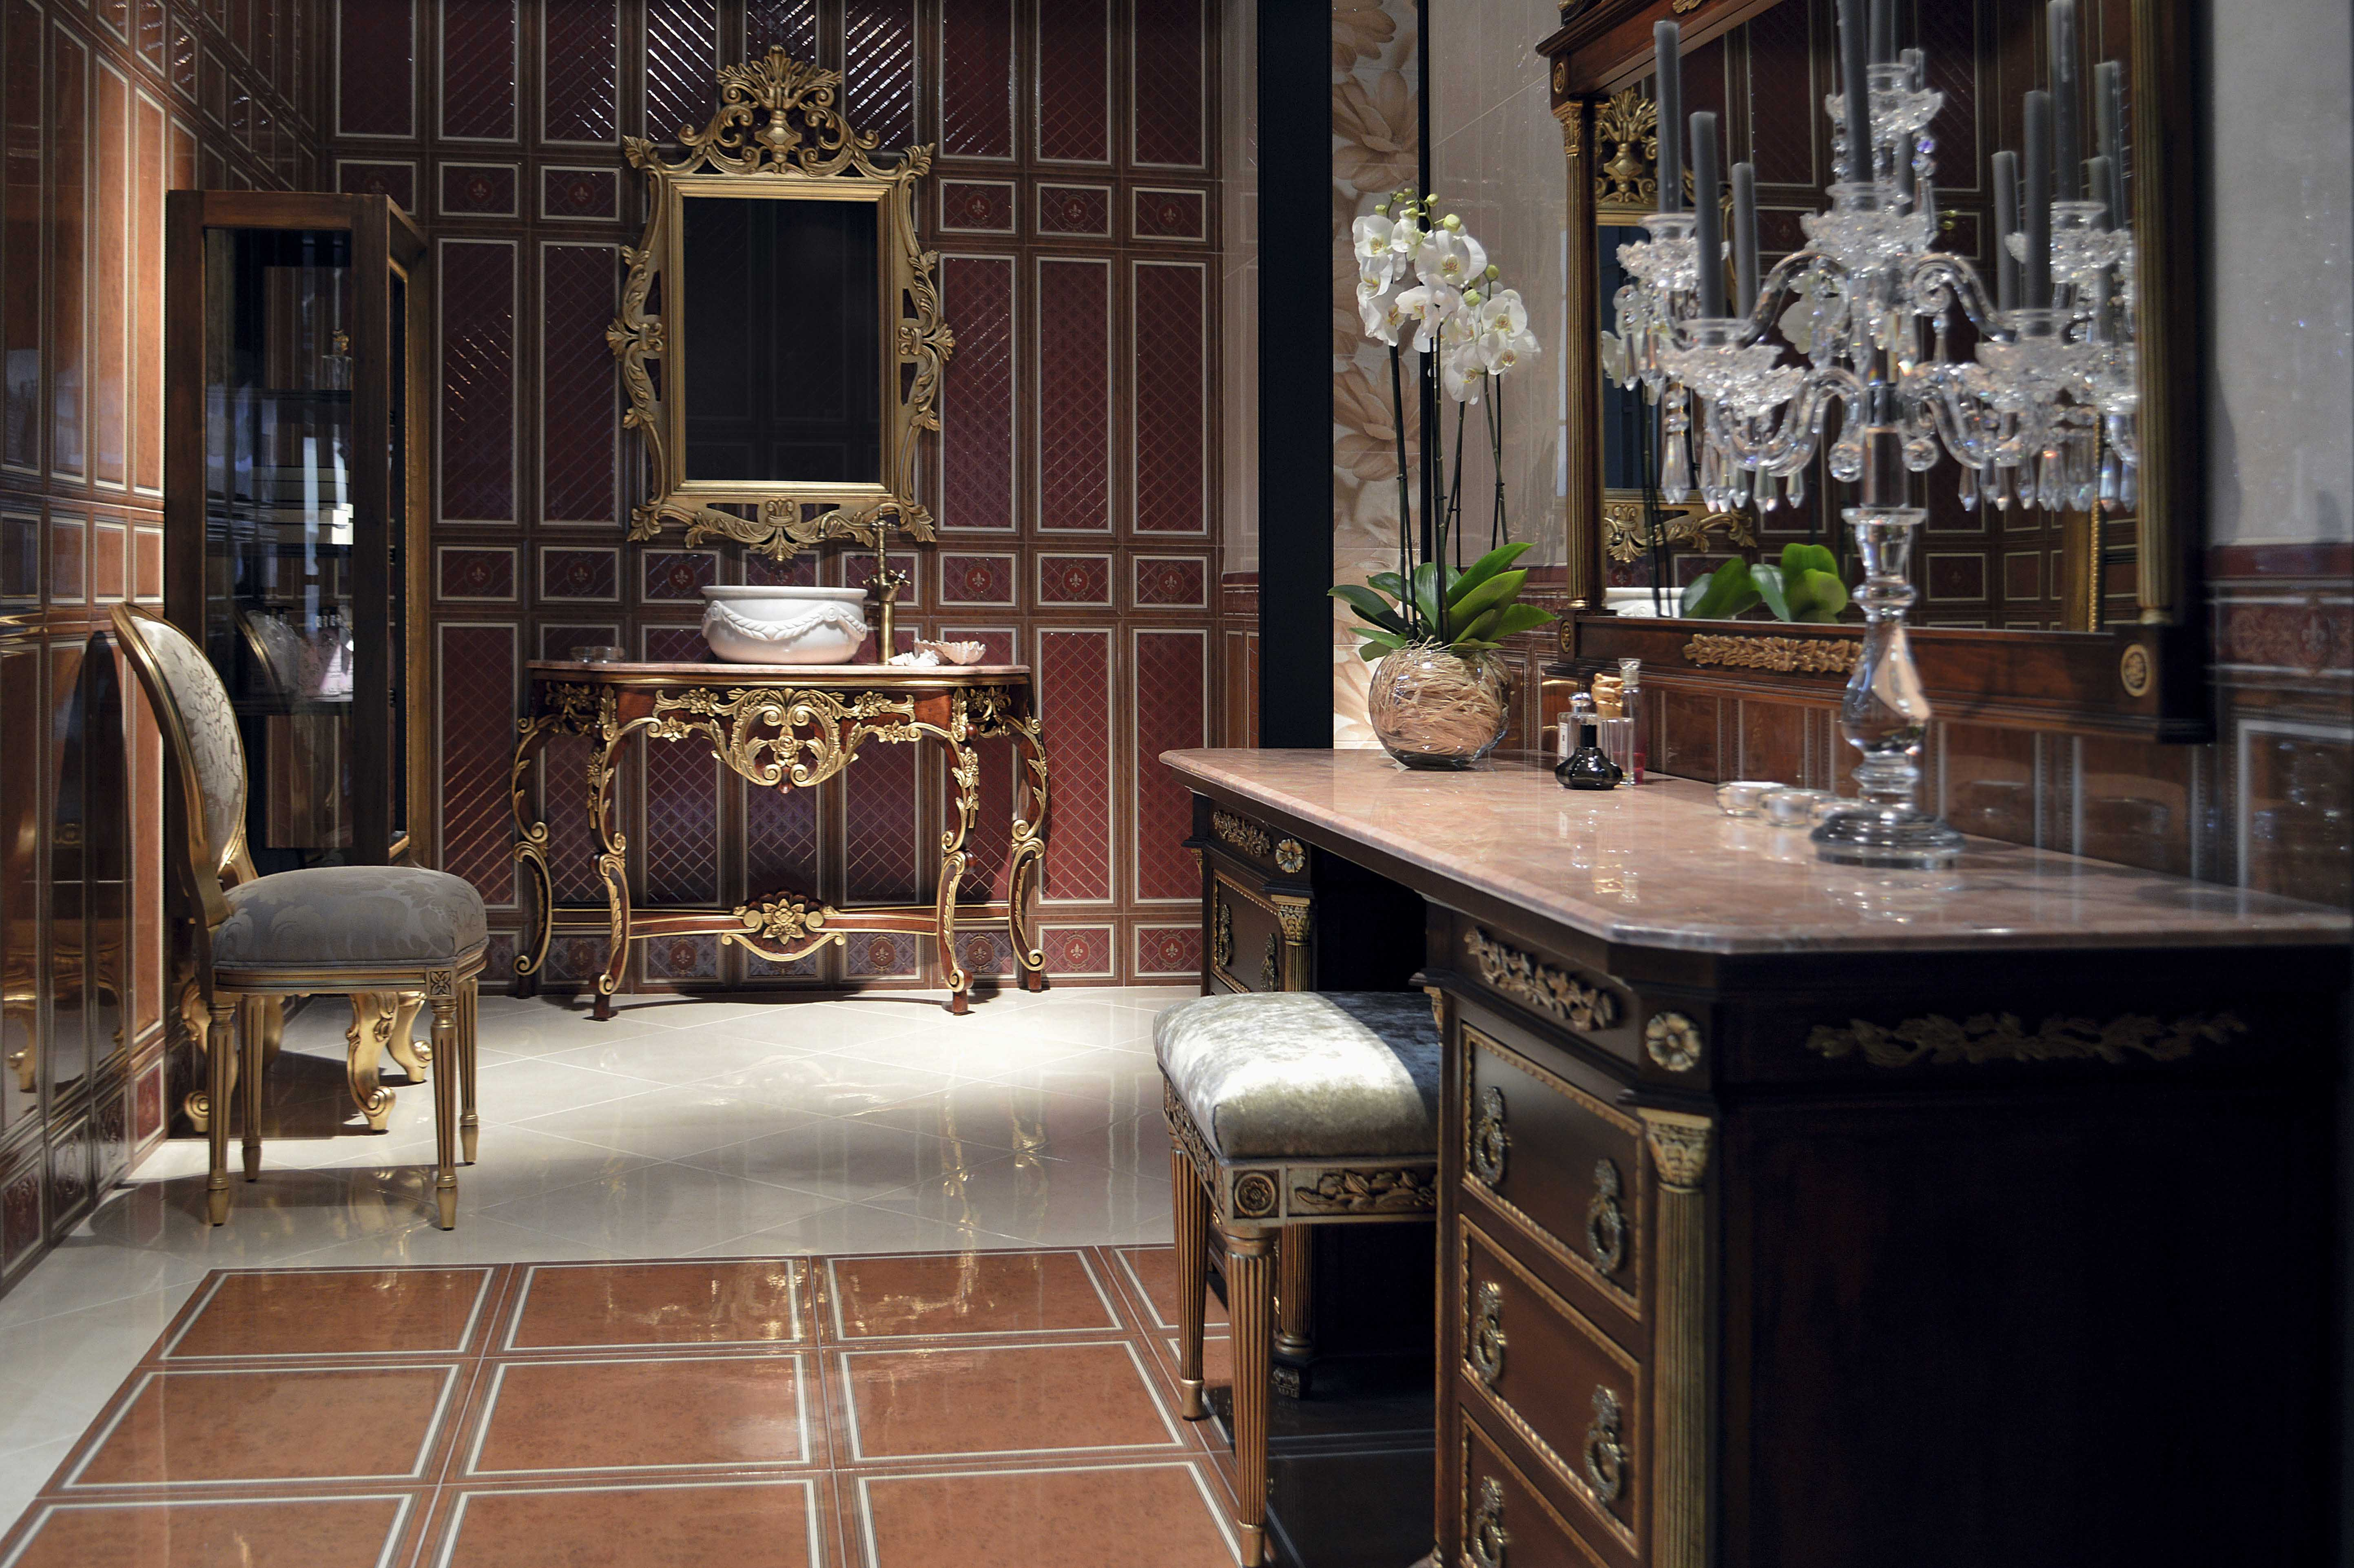 heritage bathrooms, cloakroom suites, vanity units, powder room, cloakroom